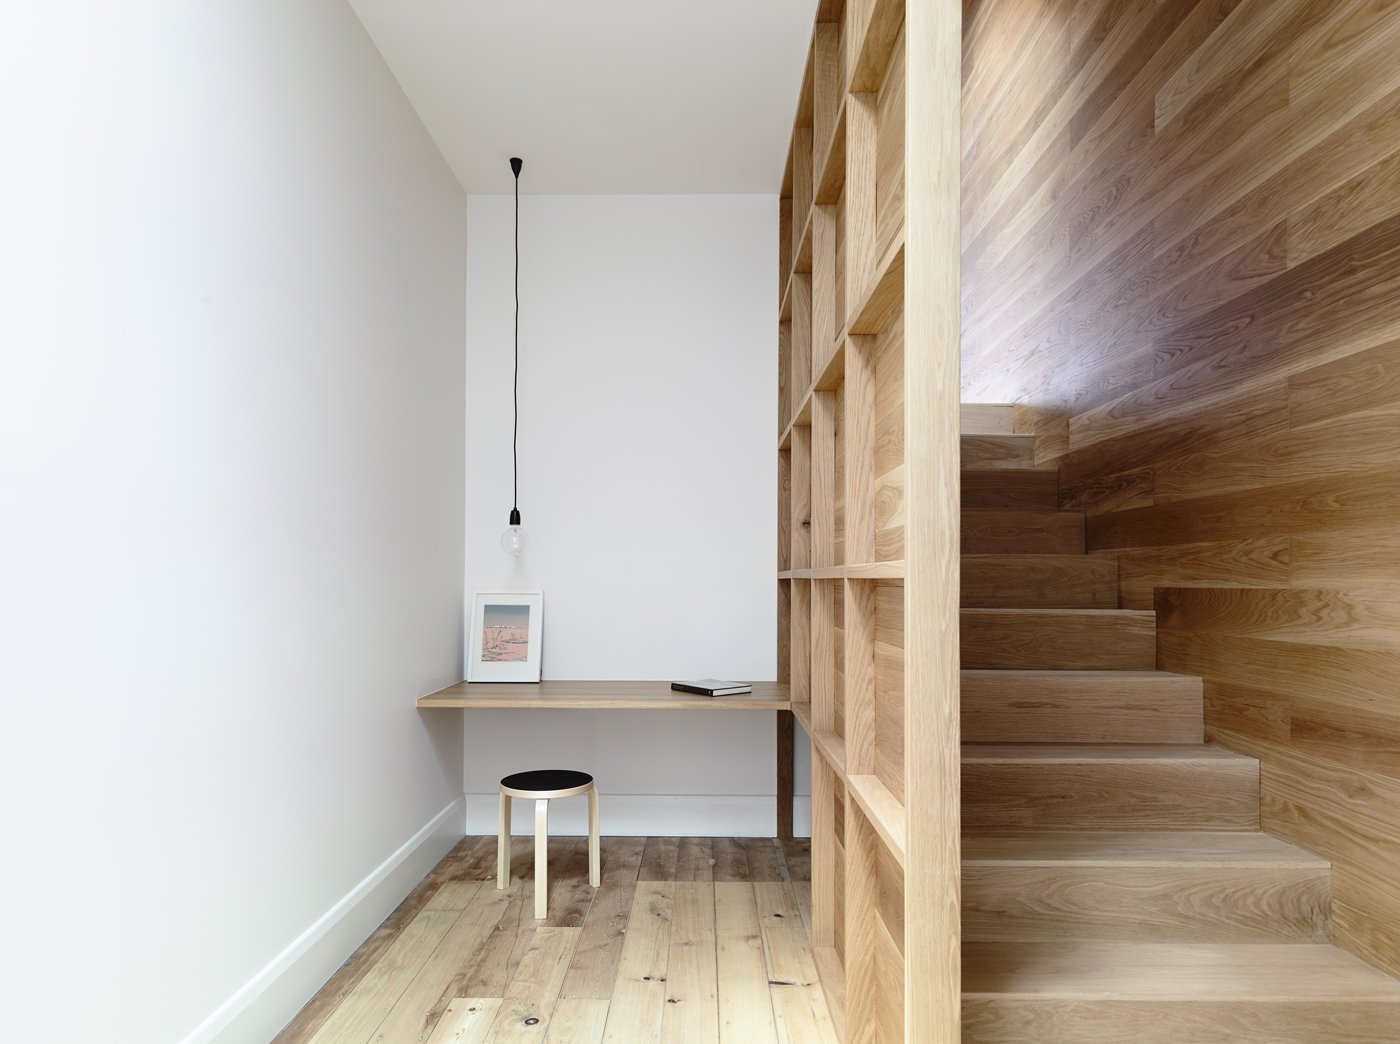 A central winding staircase connects the original house to the new addition. Exposed framing flanking the staircase creates an intimate study with plenty of shelving space. A Nud pendant light from Great Dane hangs above the built-in desk.